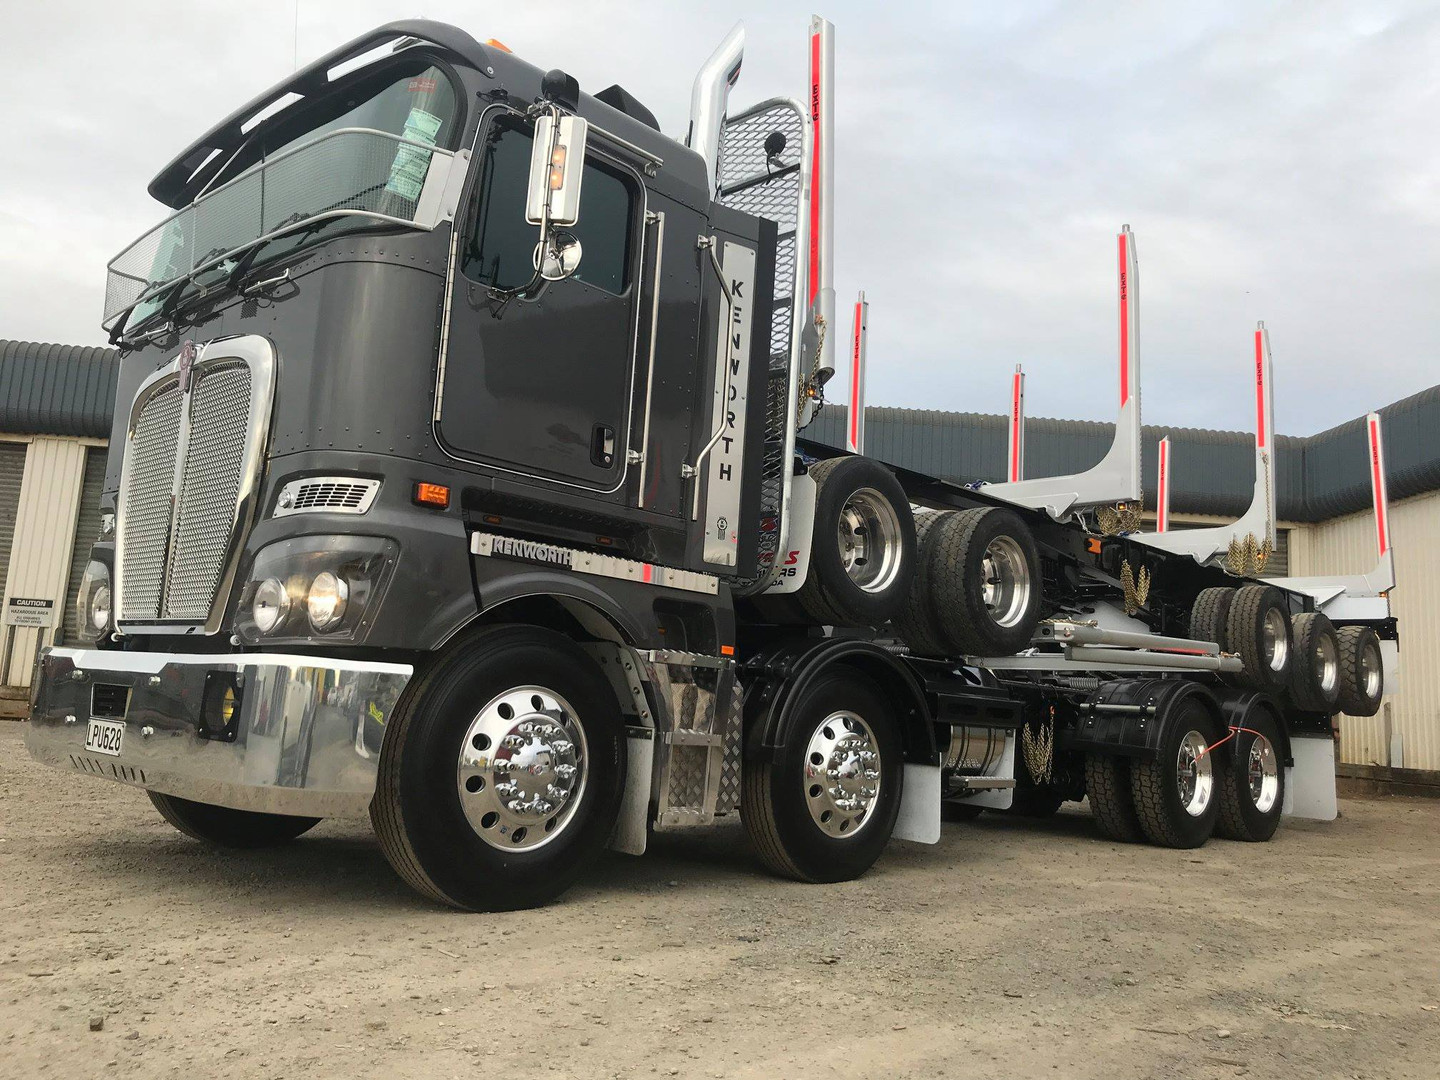 KW K200 with 5 axle trailer